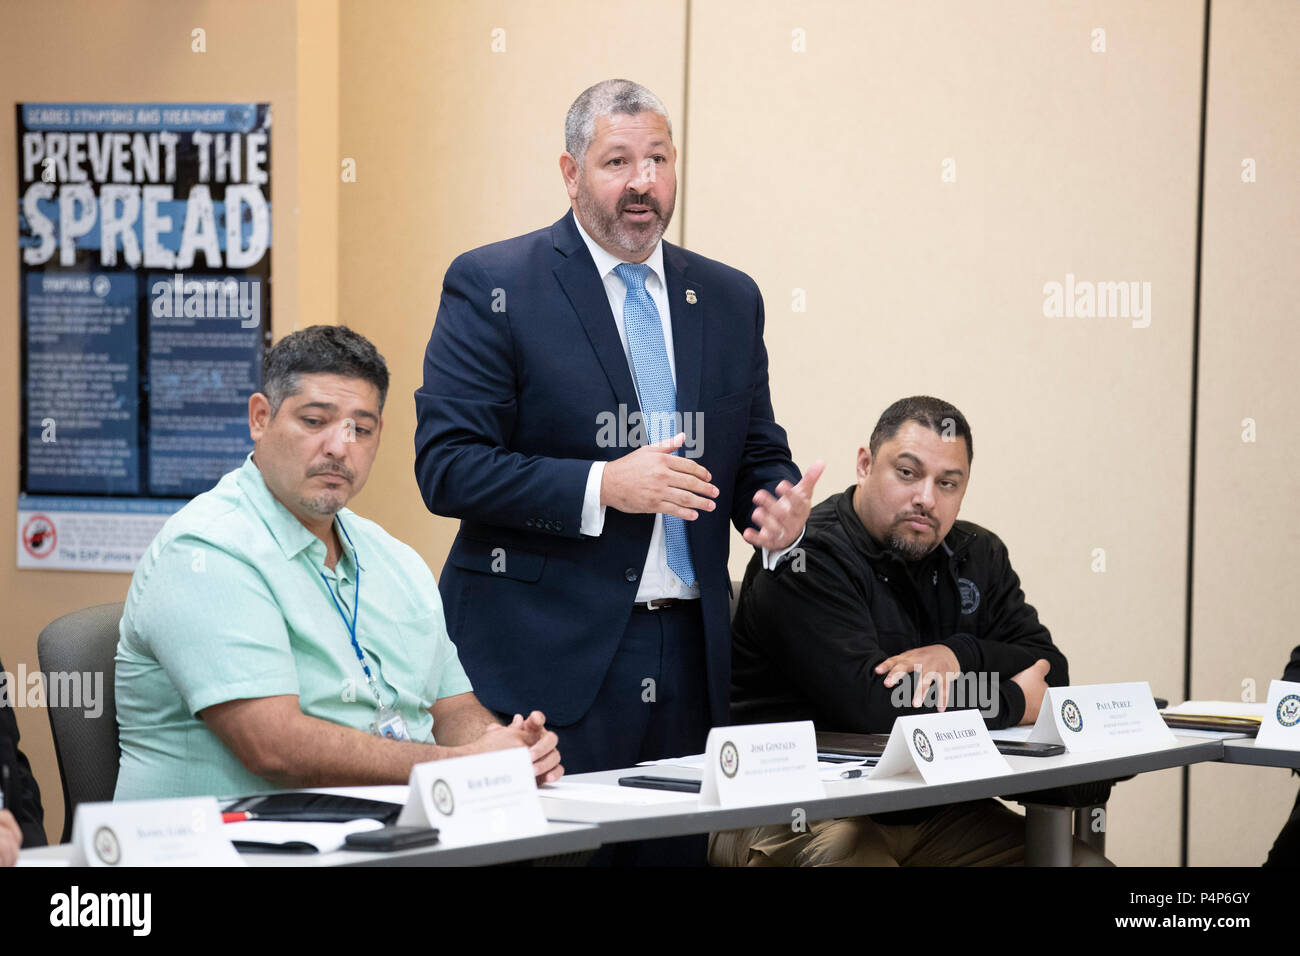 Henry Lucero, field director of ICE Enforcement and Removal Operations, speaks as federal and Texas officials and stakeholders meet in a roundtable discussion of the immigration crisis hitting the Texas-Mexico border. Confusion and public outrage reigned regarding the Trump administration's policy of separating undocumented immigrant parents from their children after crossing into the U.S. from Mexico. - Stock Image